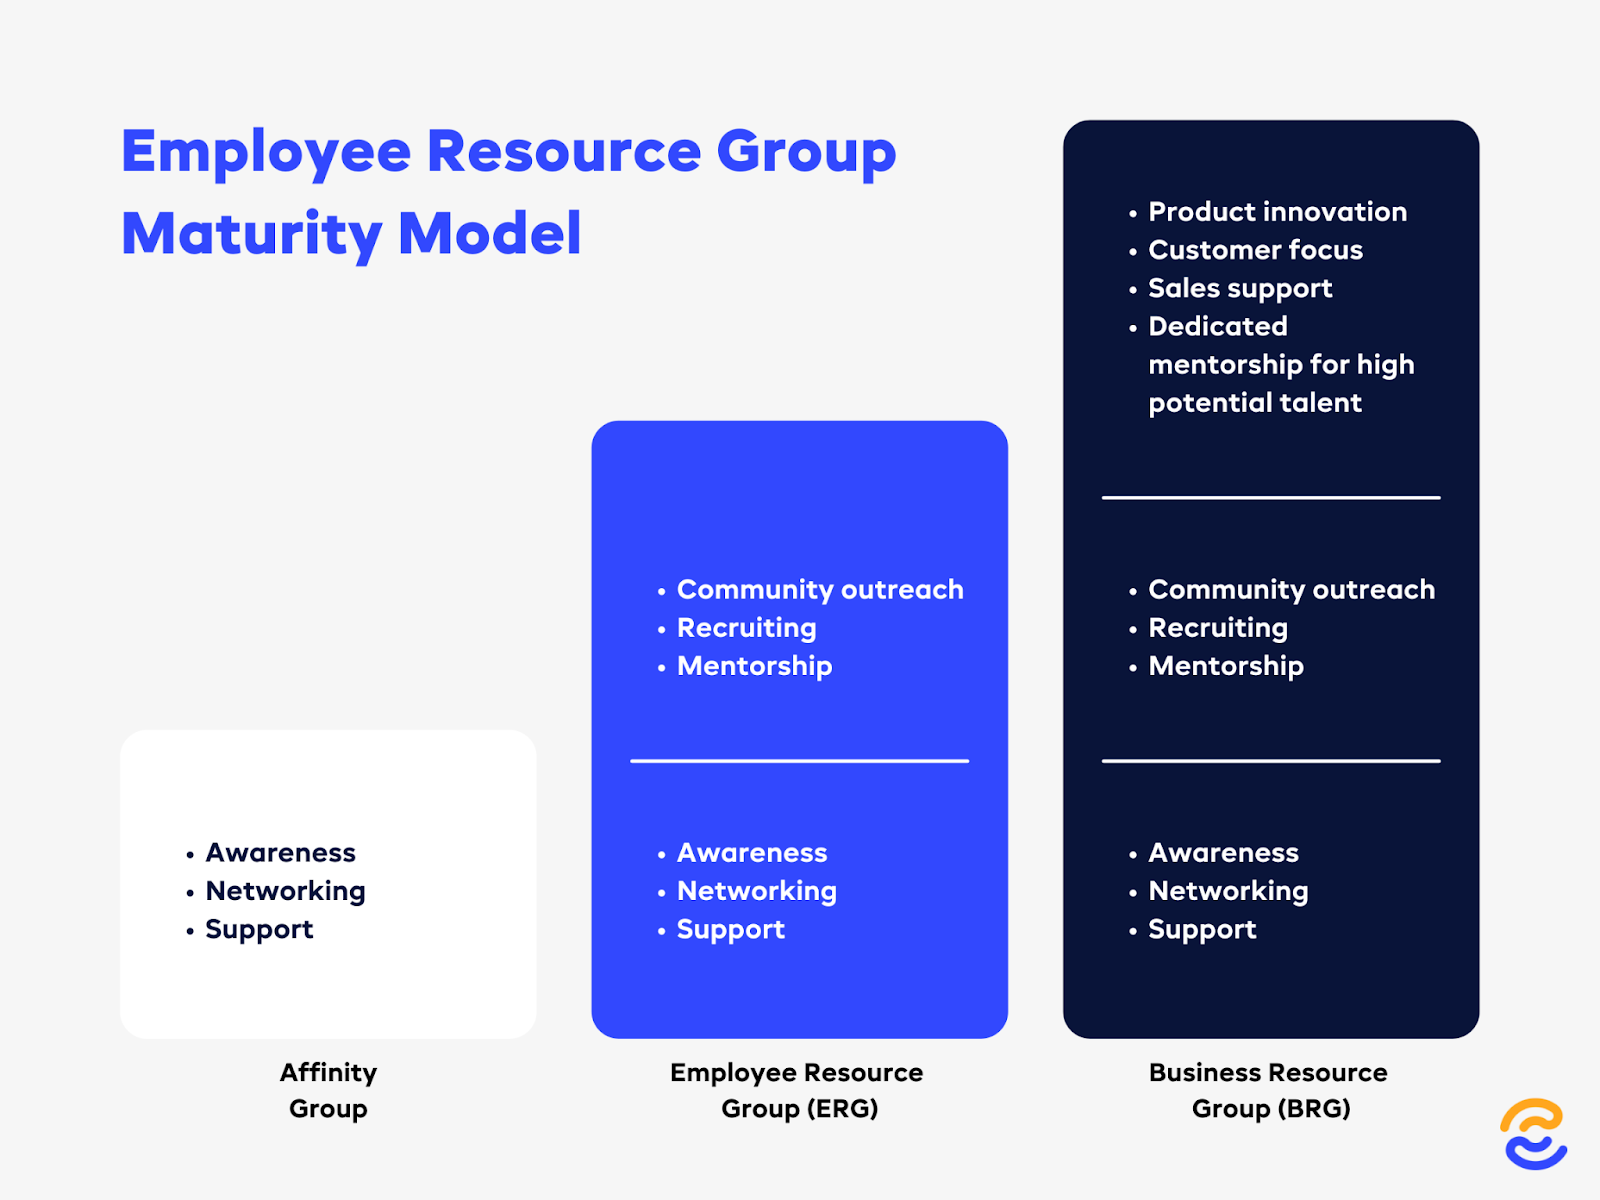 An illustration of the employee resource group maturity model.